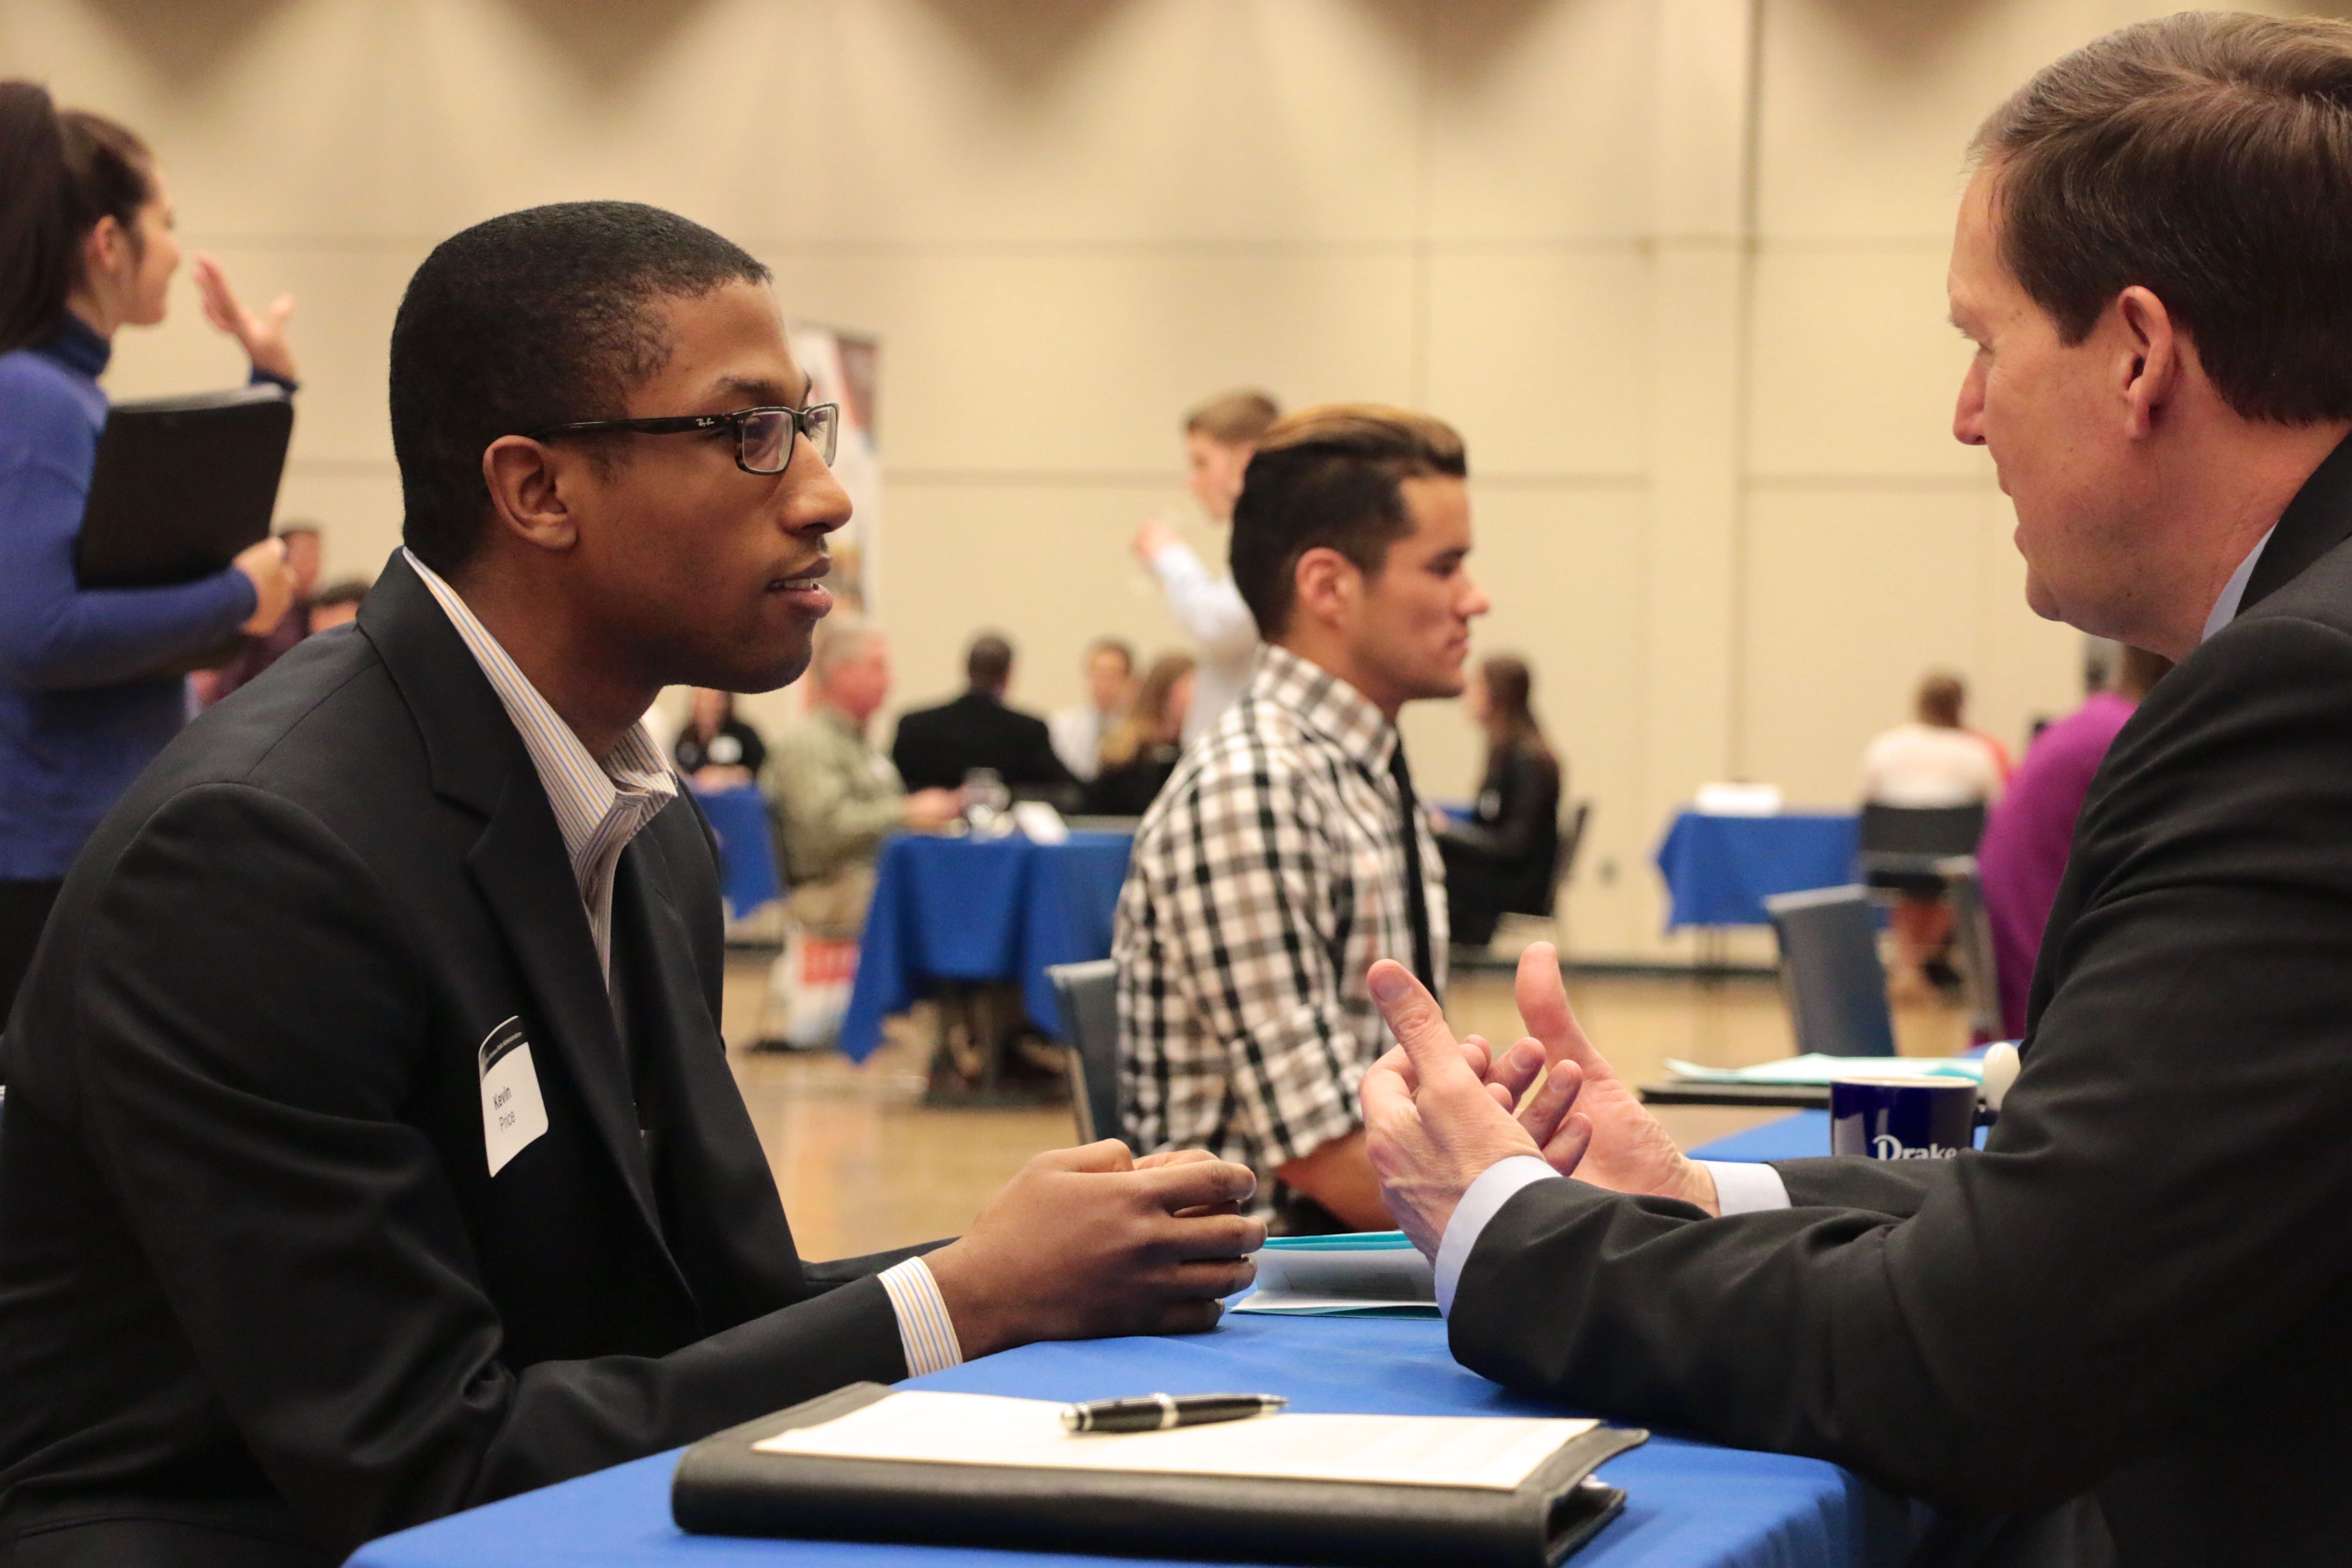 students attend marketing speed networking